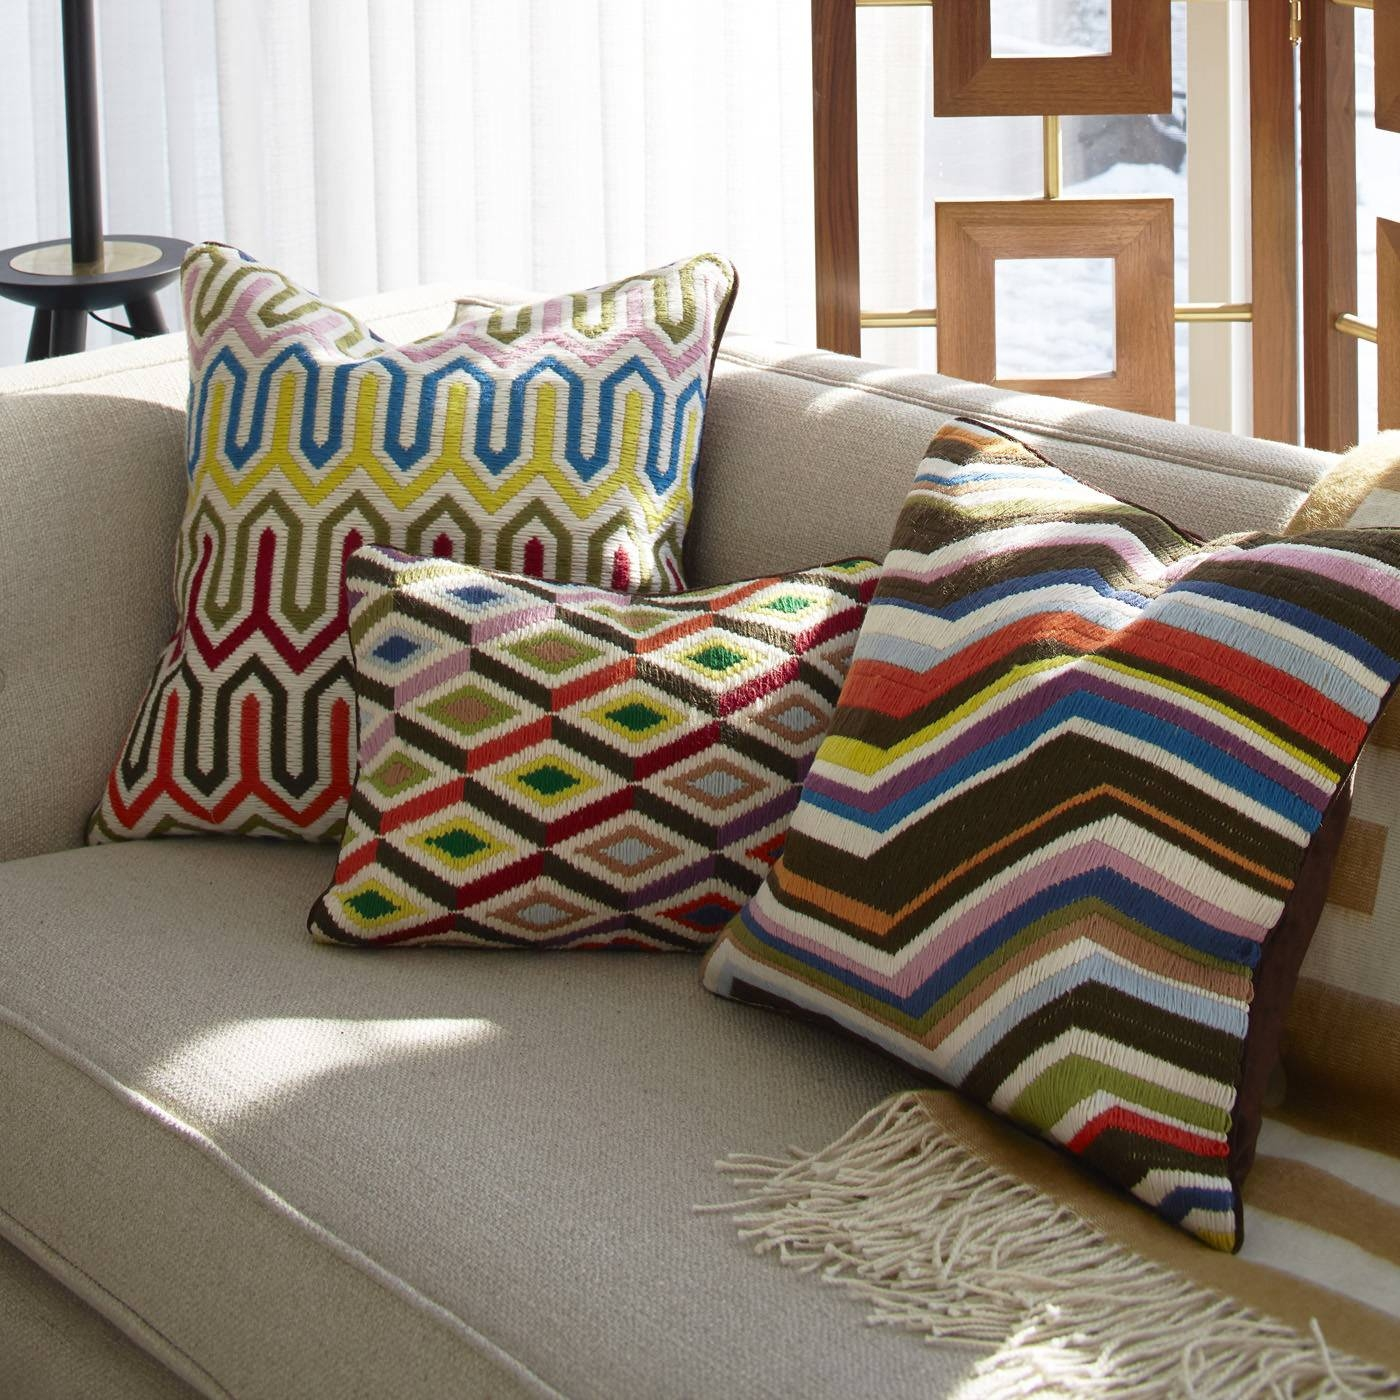 Sofas Center : Sofa Throw Pillows Wonderful Pictures Inspirations pertaining to Oversized Sofa Pillows (Image 25 of 30)